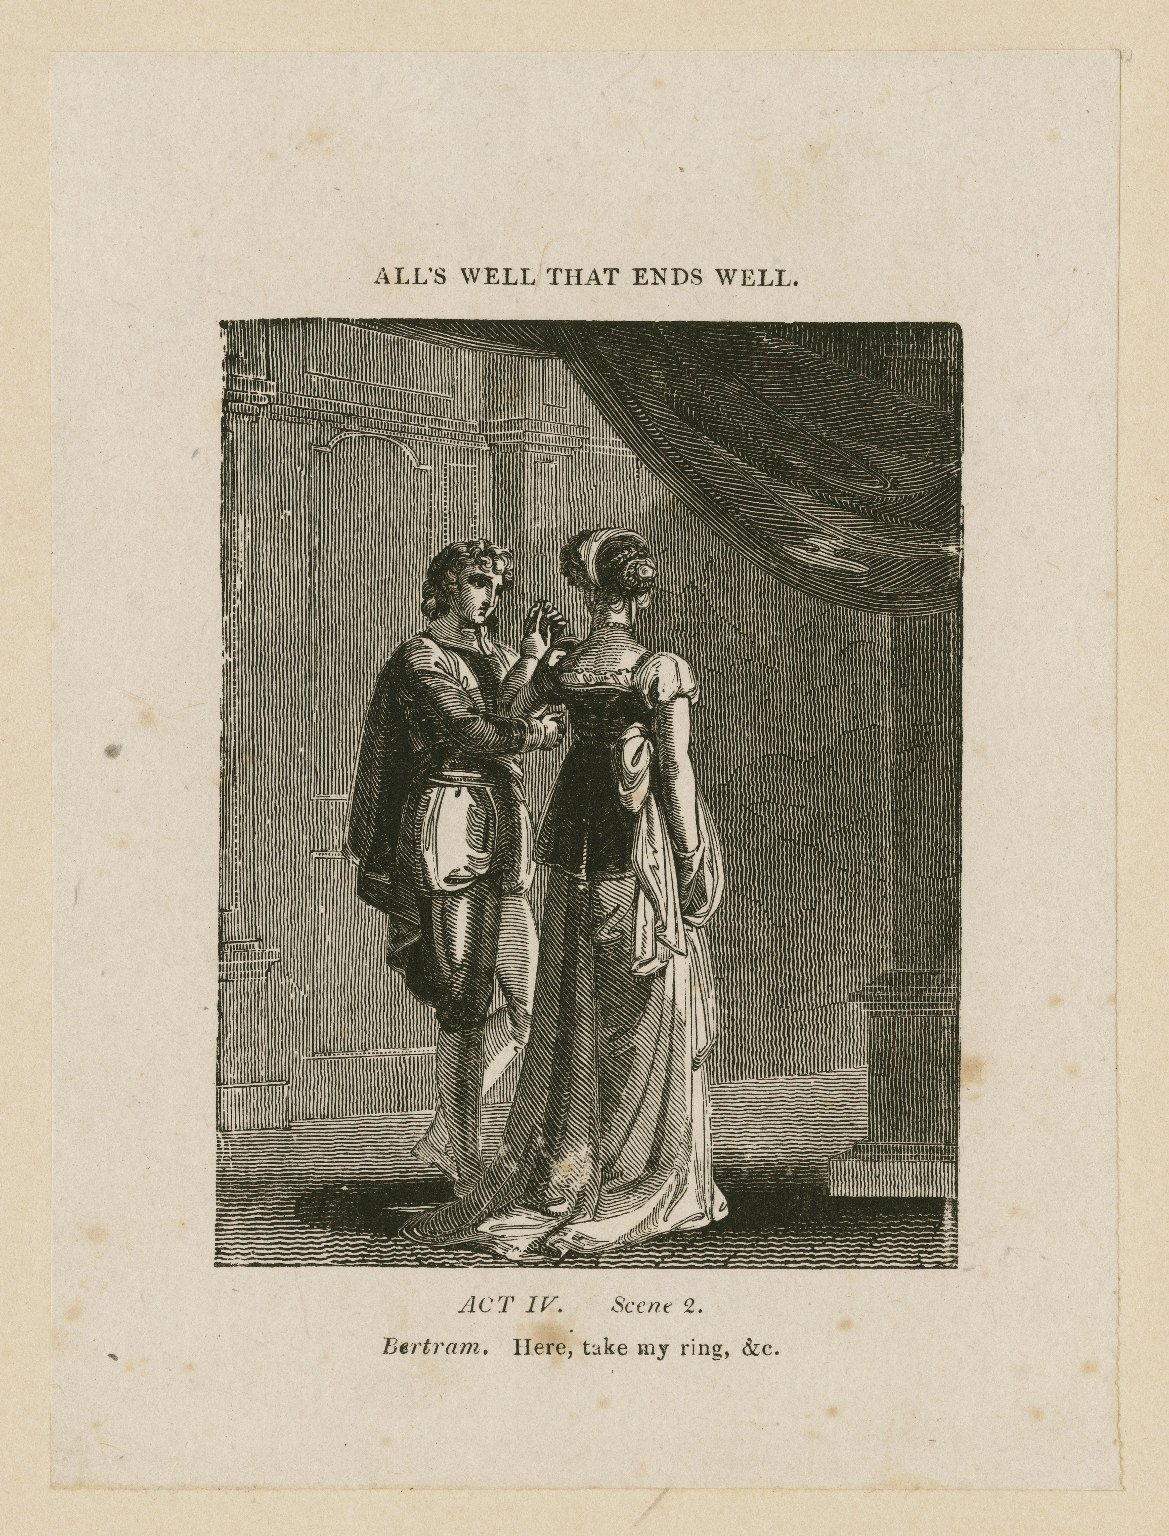 All's well that ends well, act IV, scene 2, Bertram: Here, take my ring, &c. [graphic] / [John Thurston] ; engraved by Allen Robert Branston.